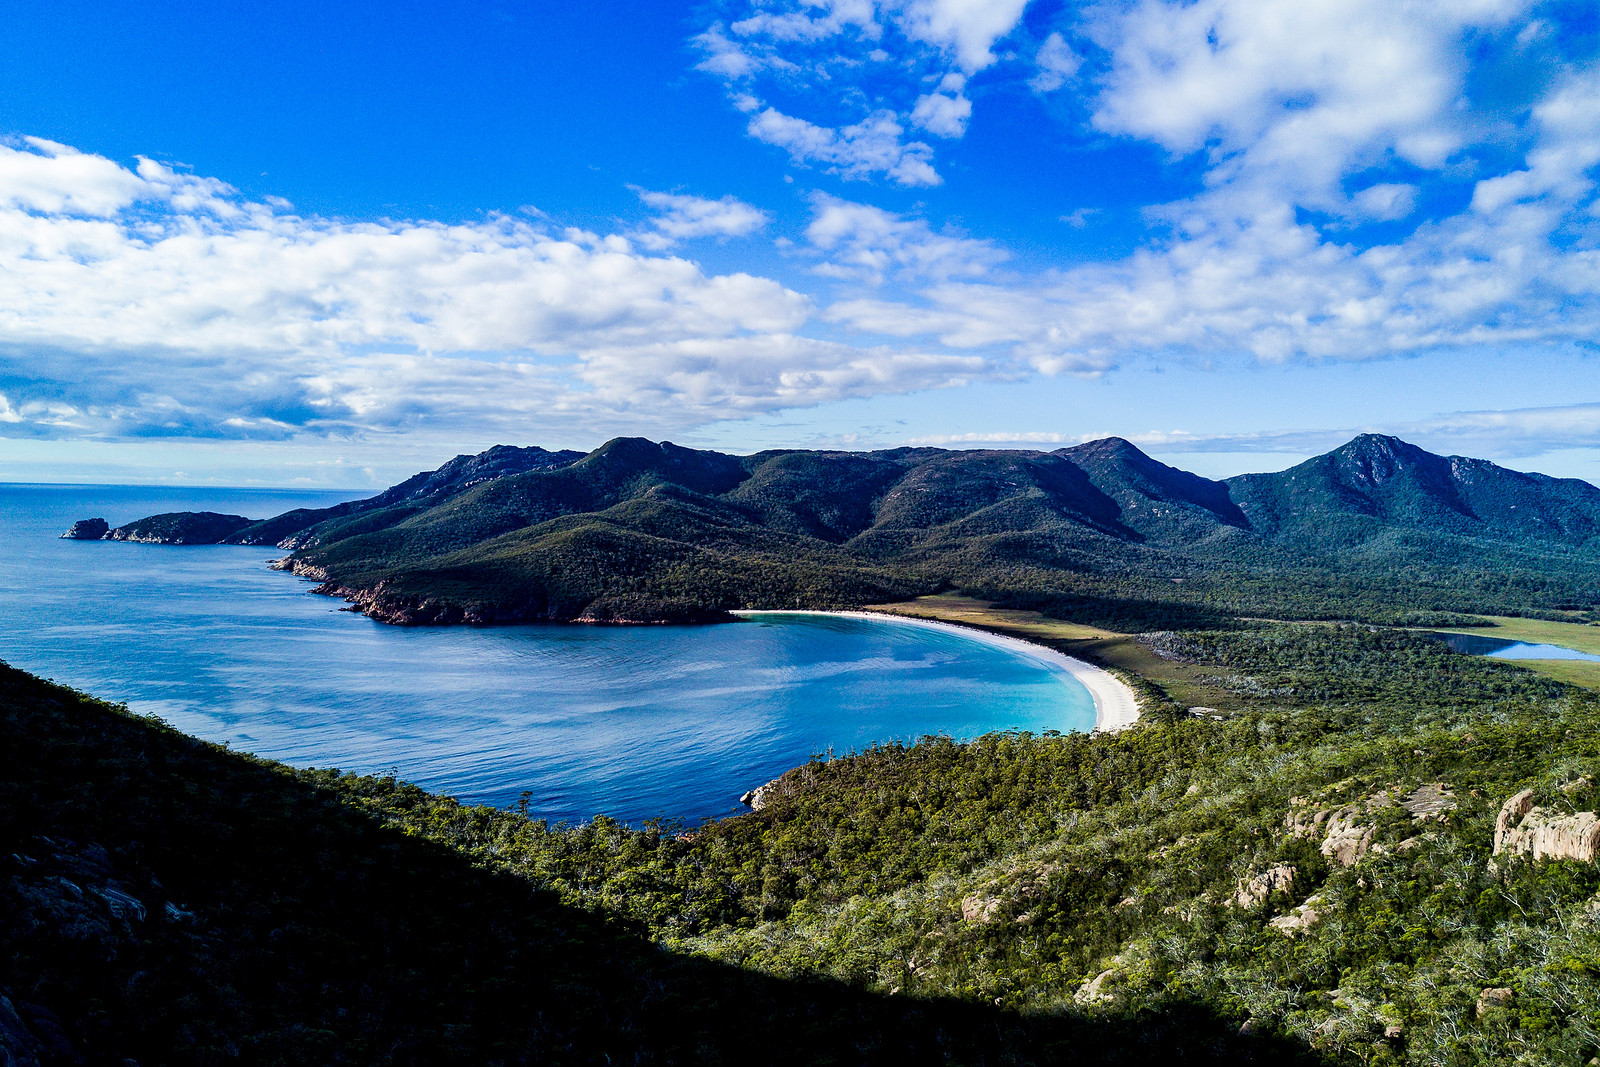 So many cool places just a short drive away from the venue which many of the teams have been able to visit between Rotorua and here. Wineglass Bay voted one of World's top ten beaches.